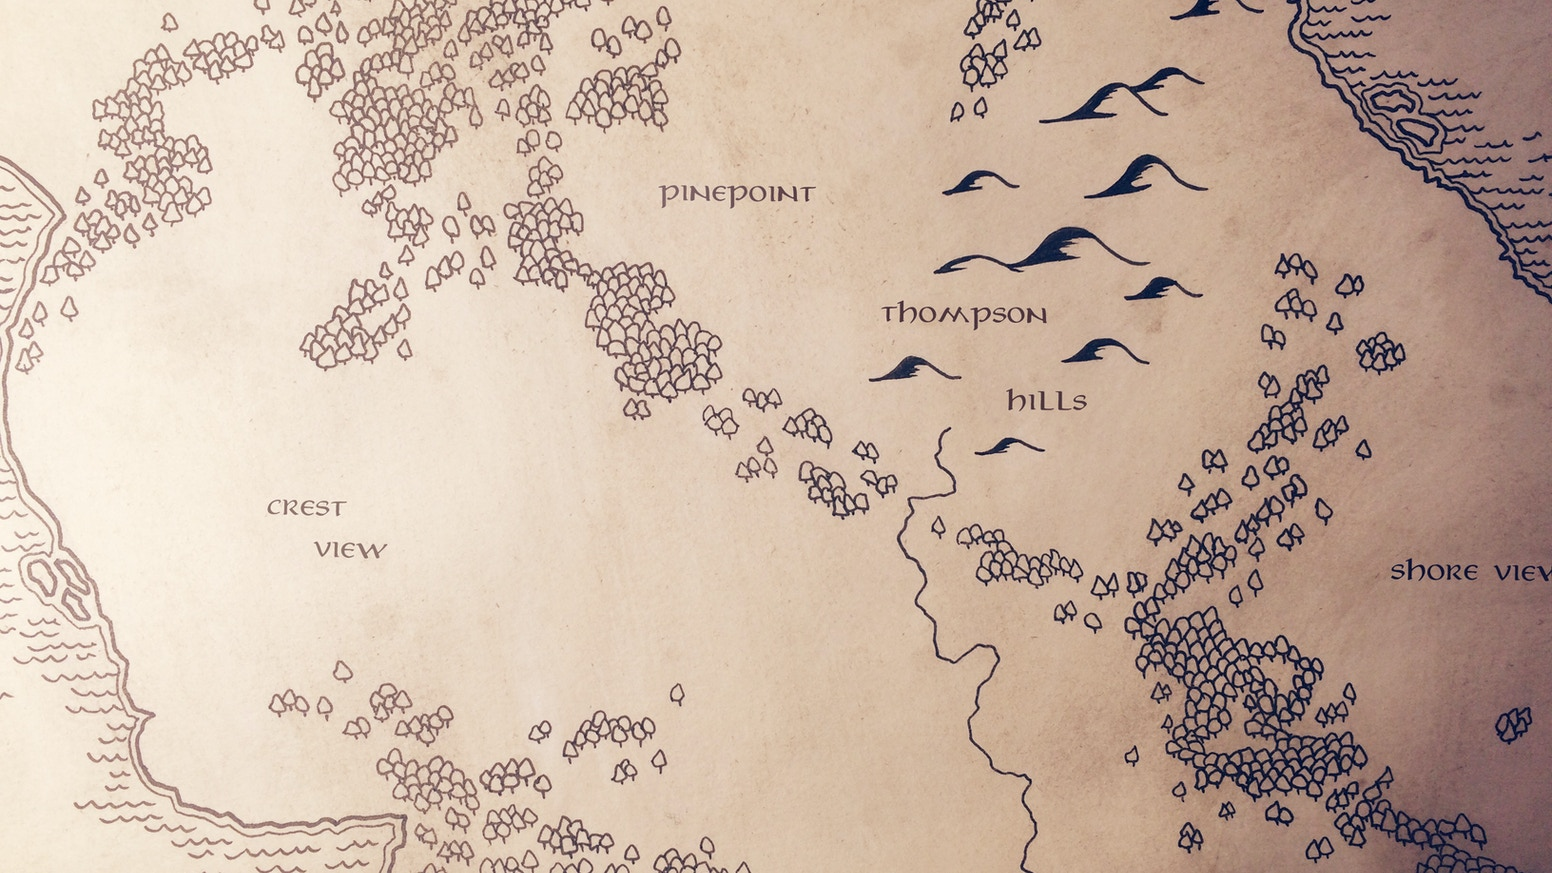 get a custom hand drawn tolkien inspired map in the style of the lord of the rings and the hobbit